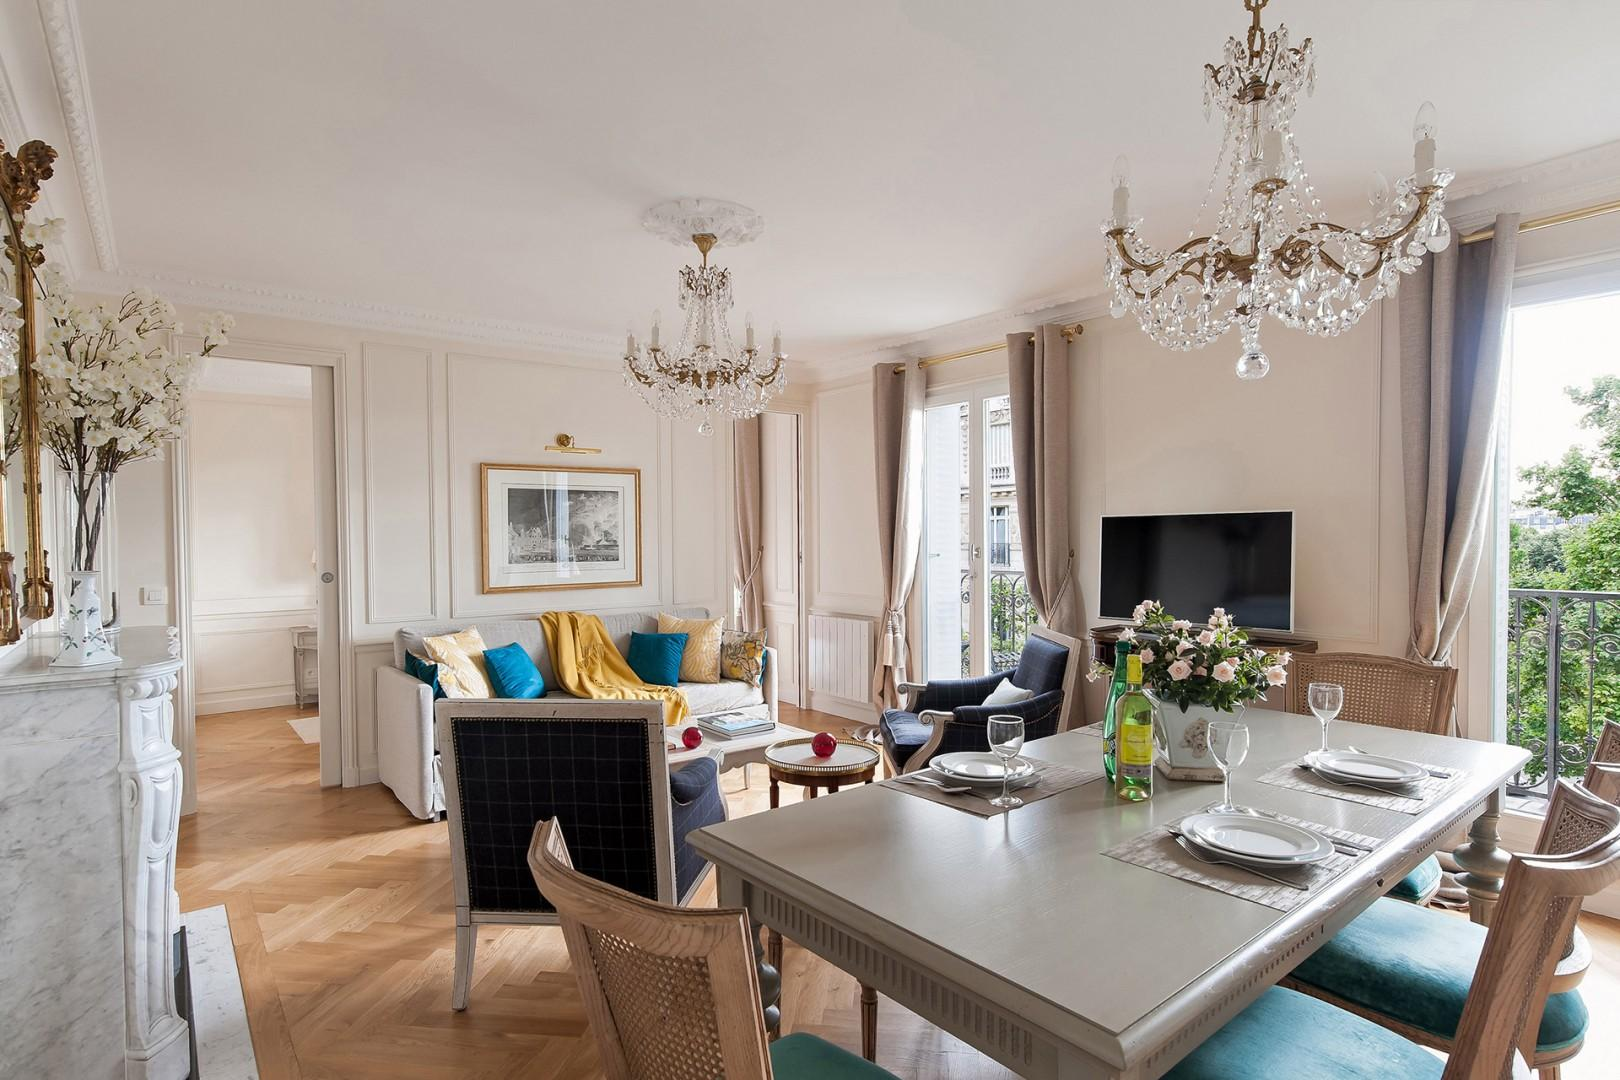 The open-plan living and dining area is perfect for entertaining.